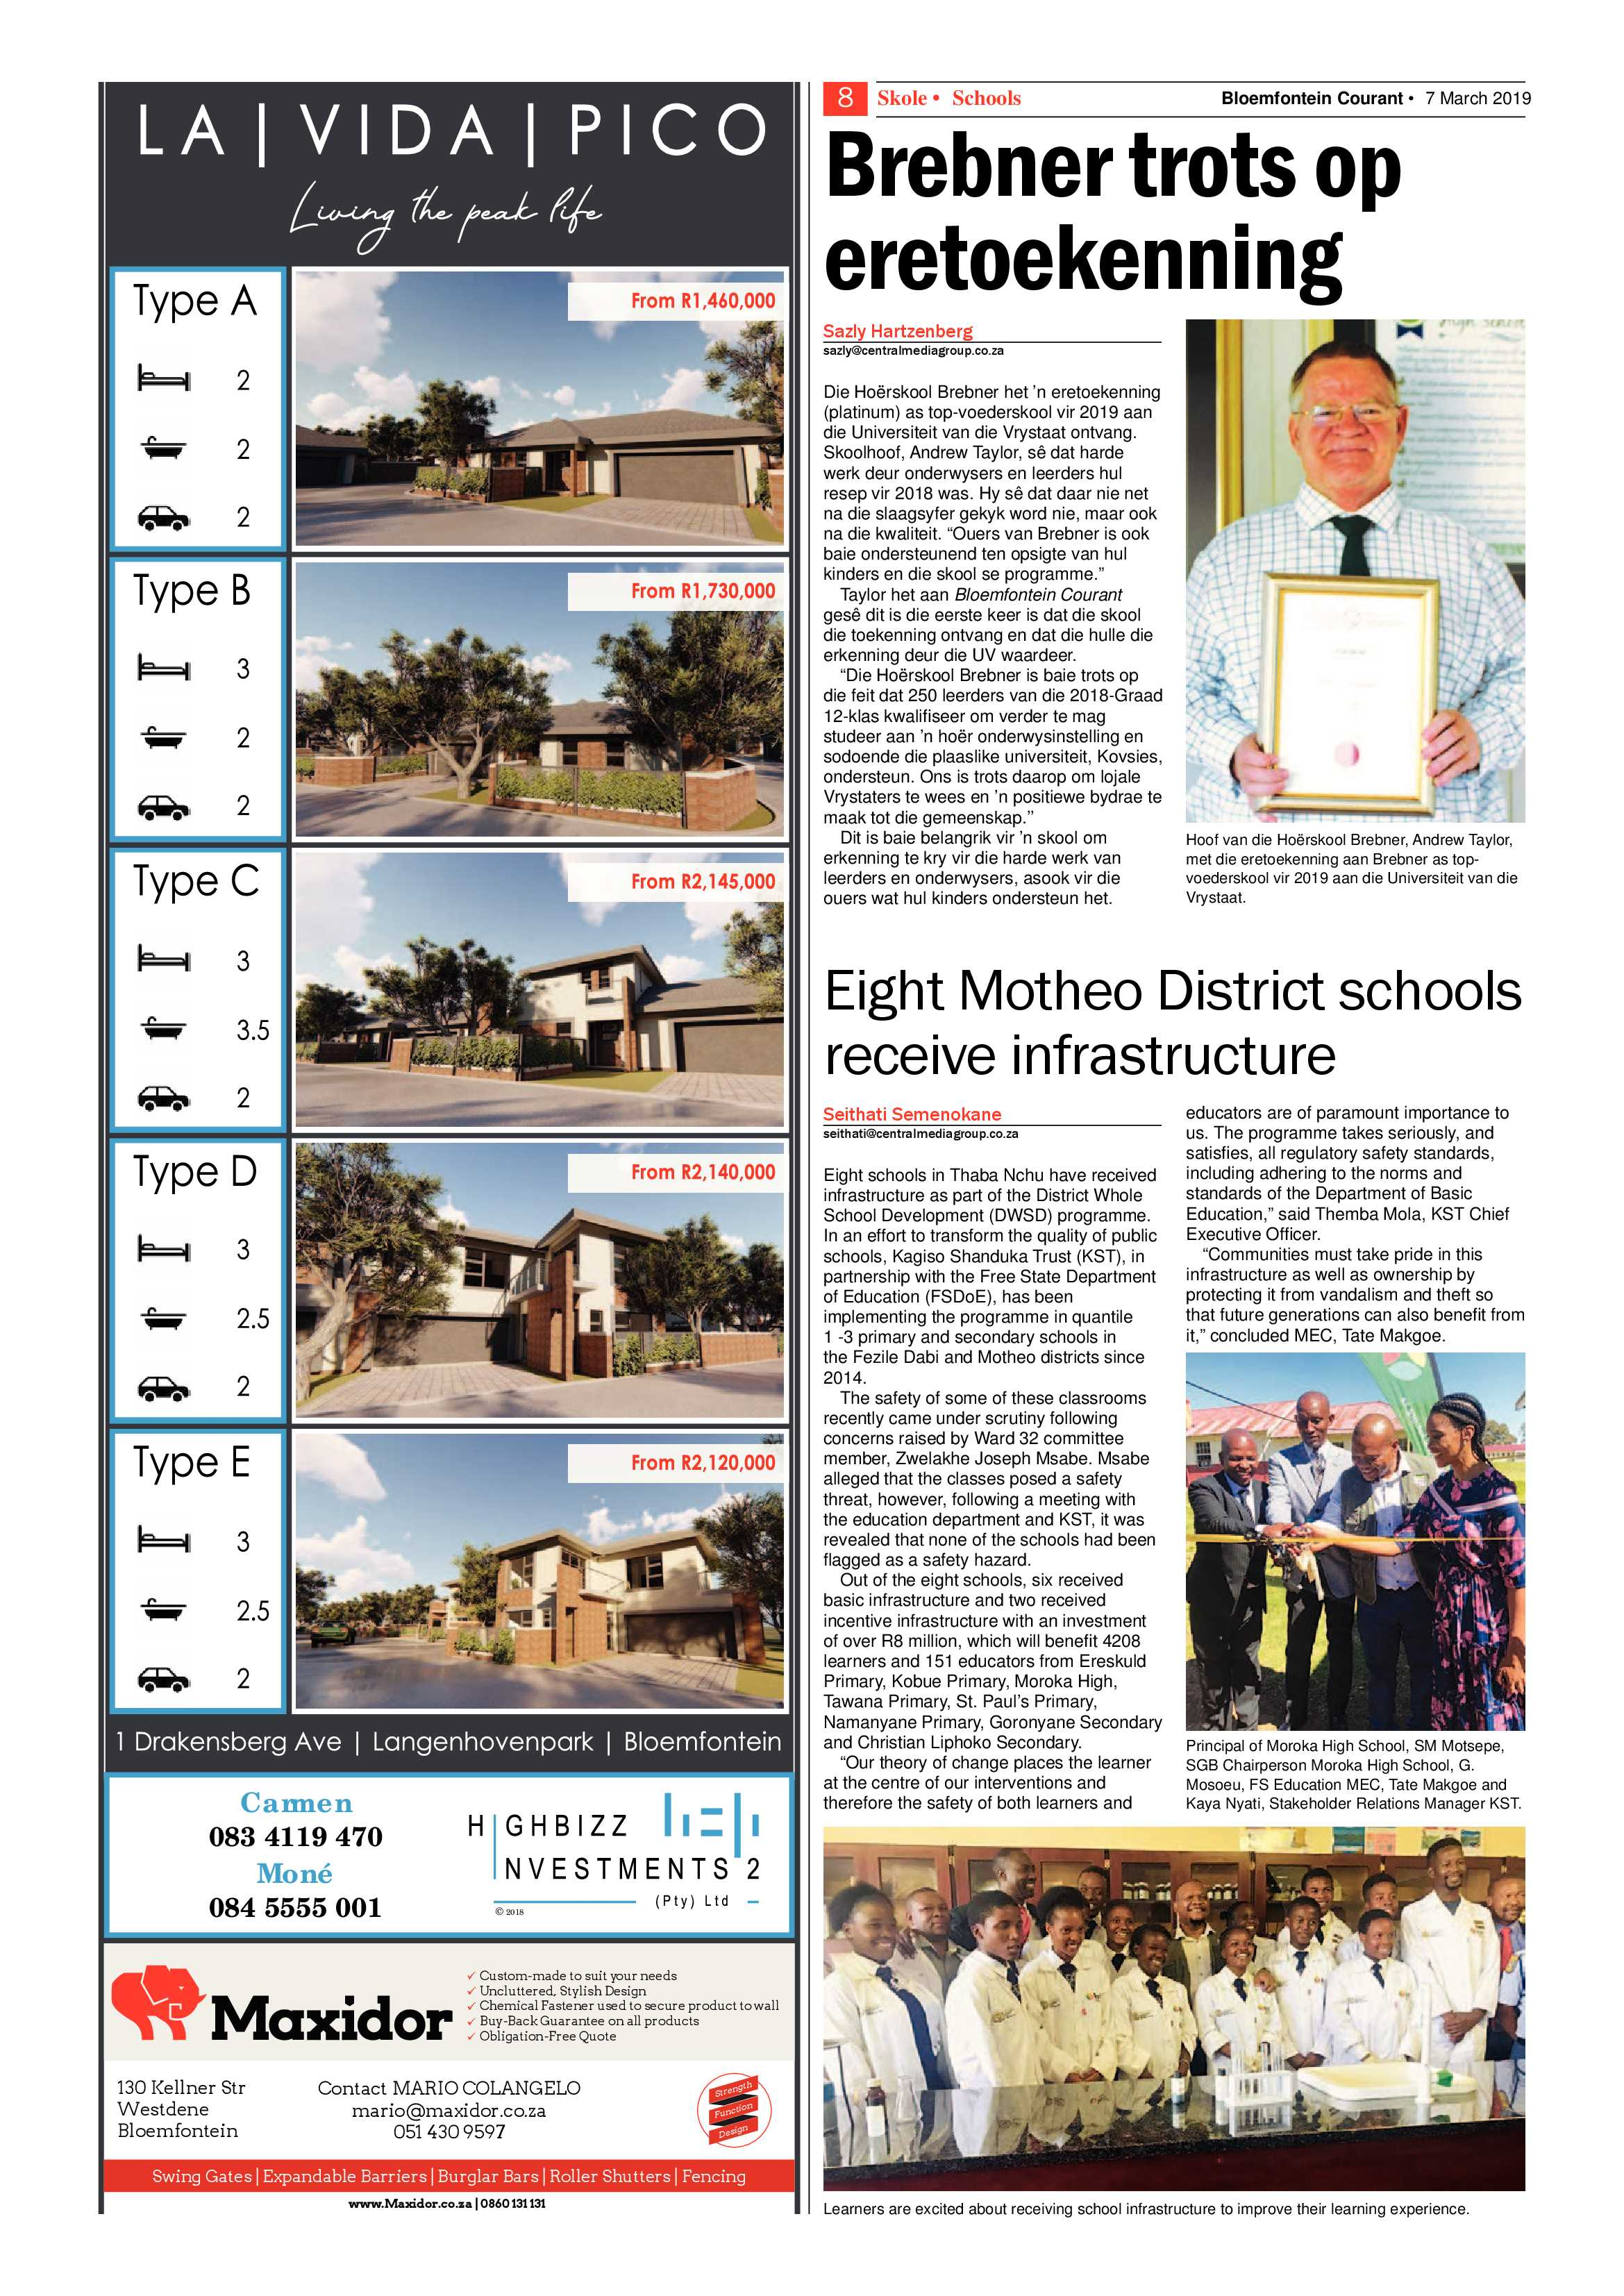 courant-7-march-2019-2-epapers-page-8